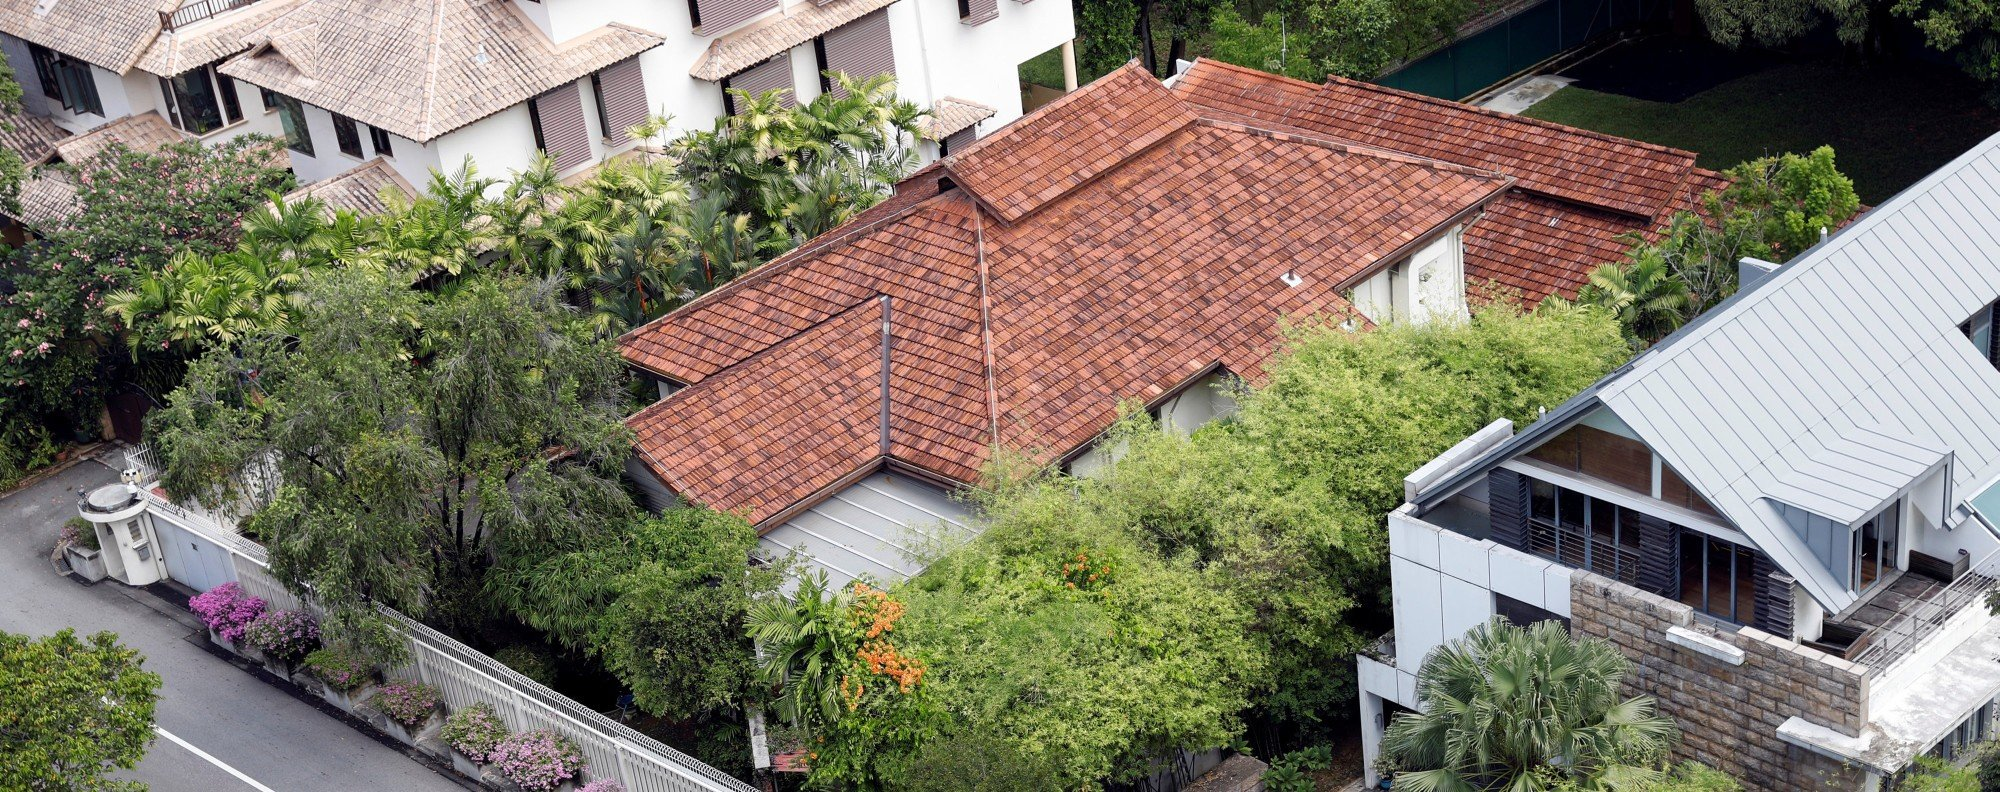 A view of former prime minister Lee Kuan Yew's Oxley Road residence in Singapore. Photo: Reuters